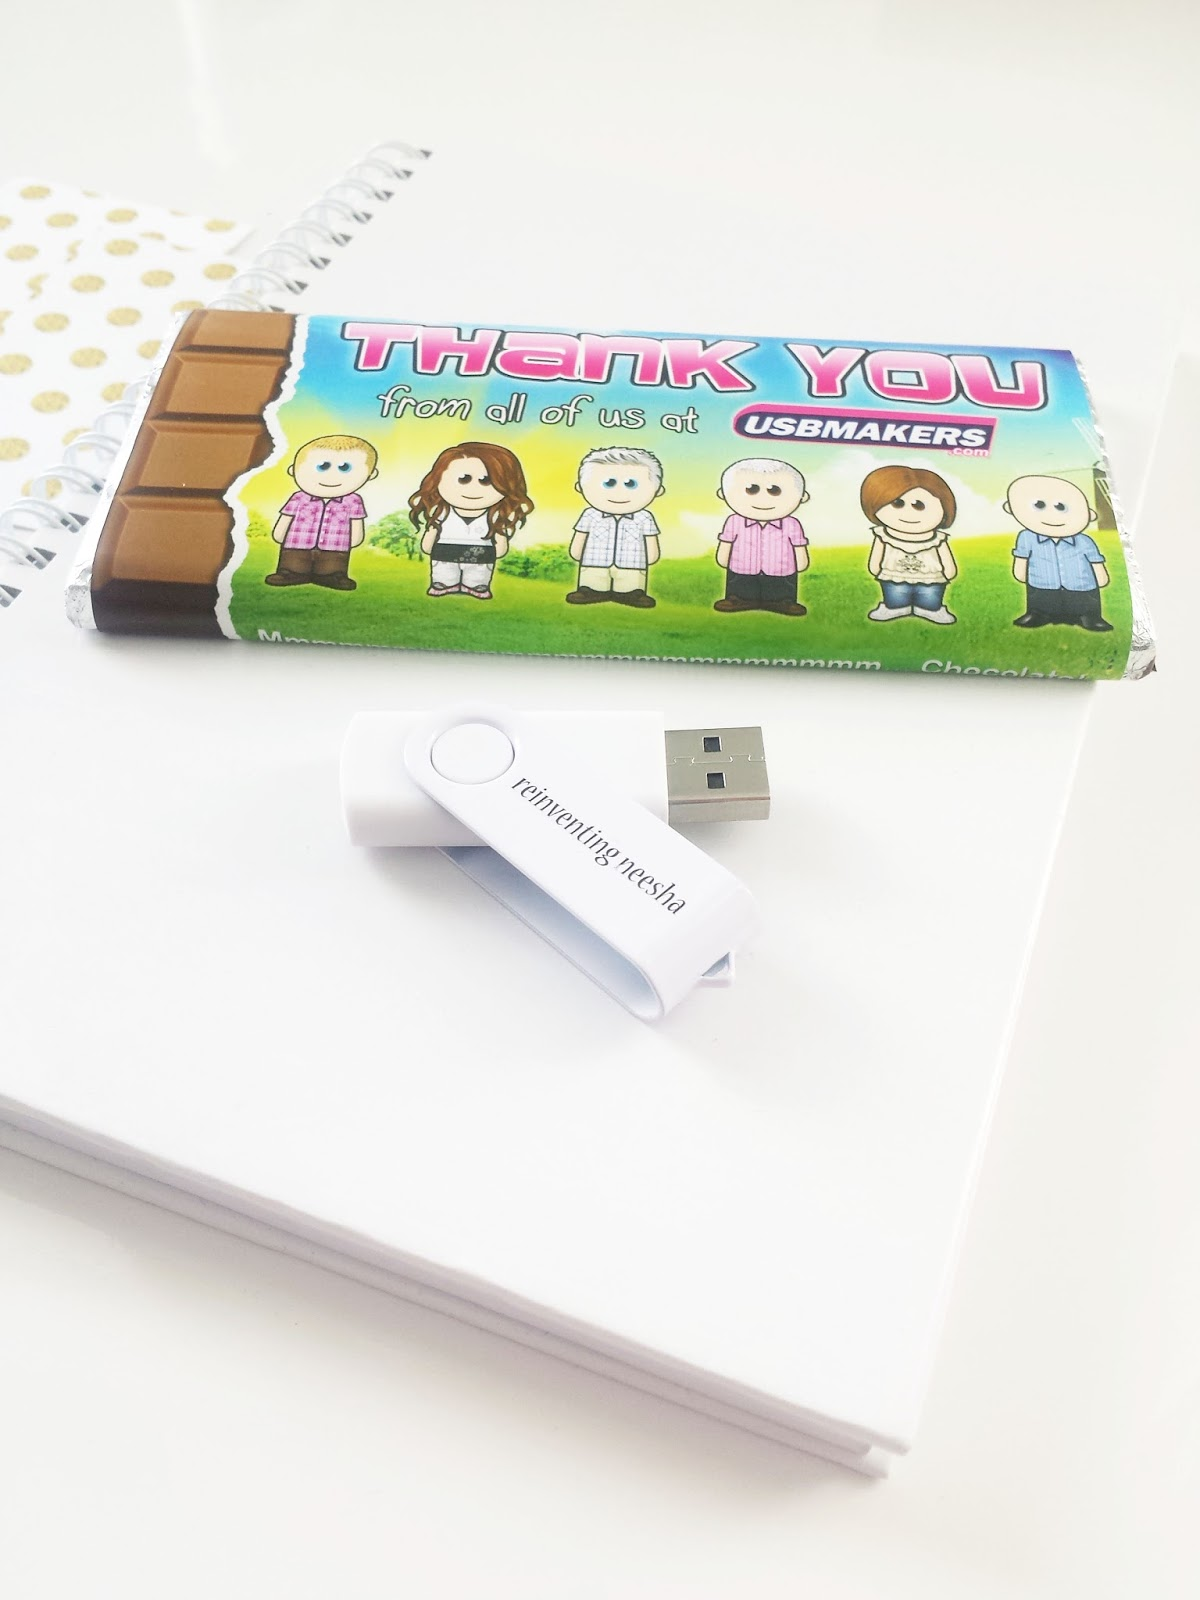 USB Makers Personalised USB Stick